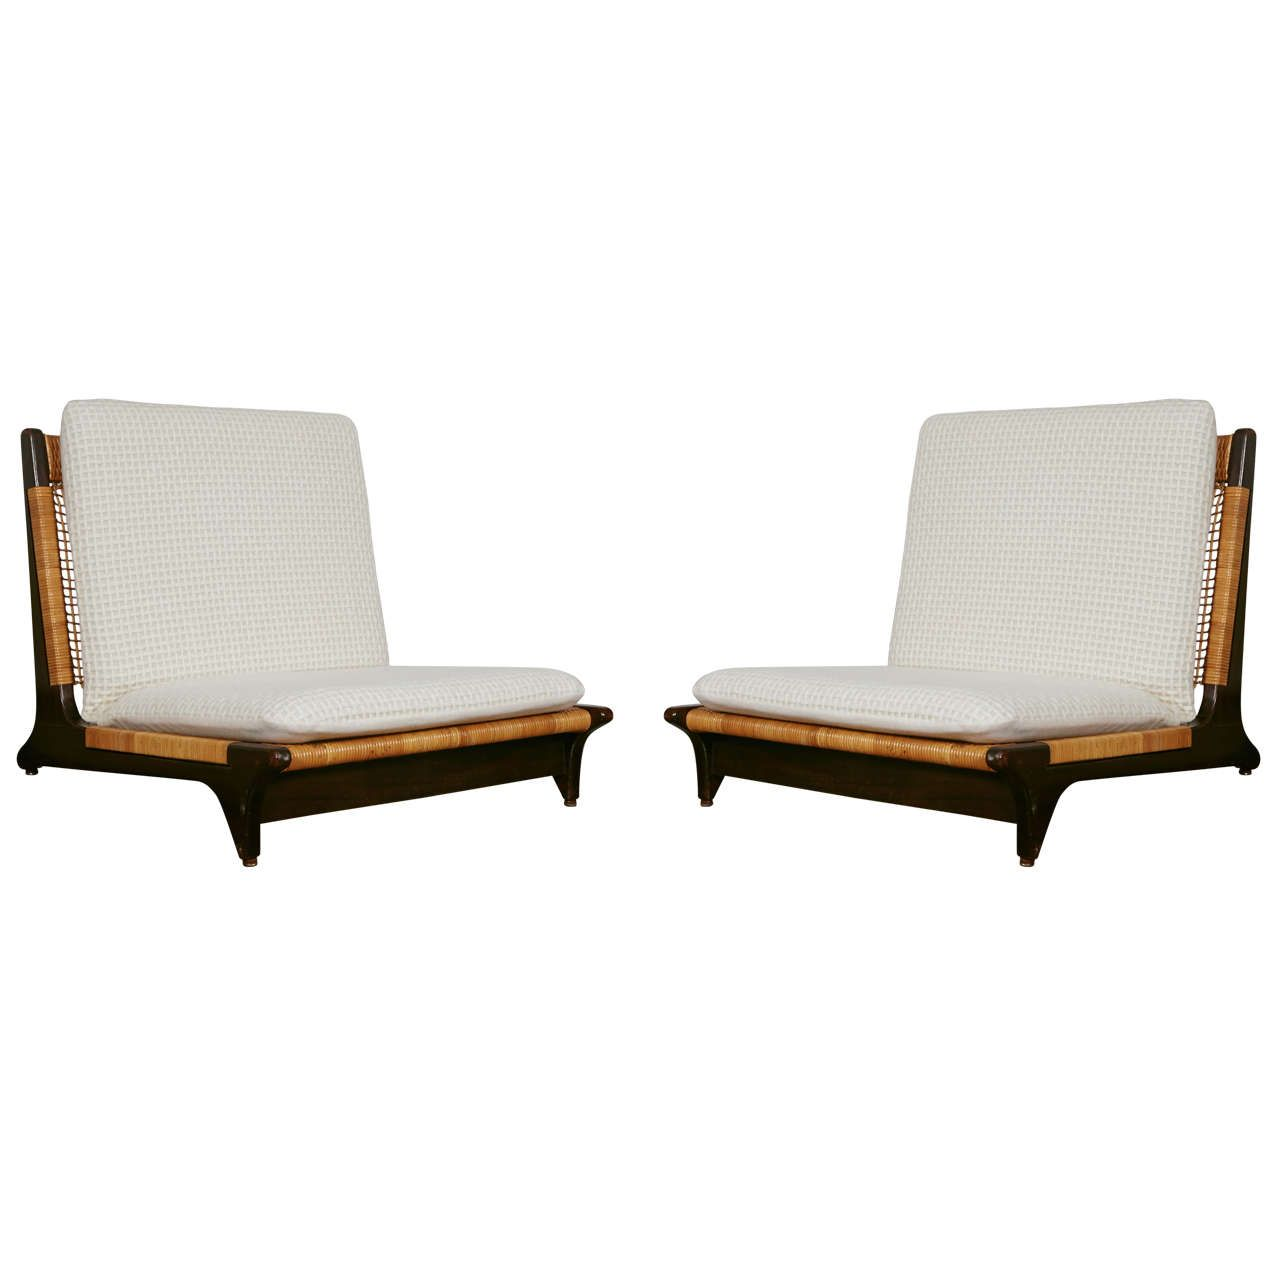 Pair Of Hans Olsen Low Chairs From A Unique Collection